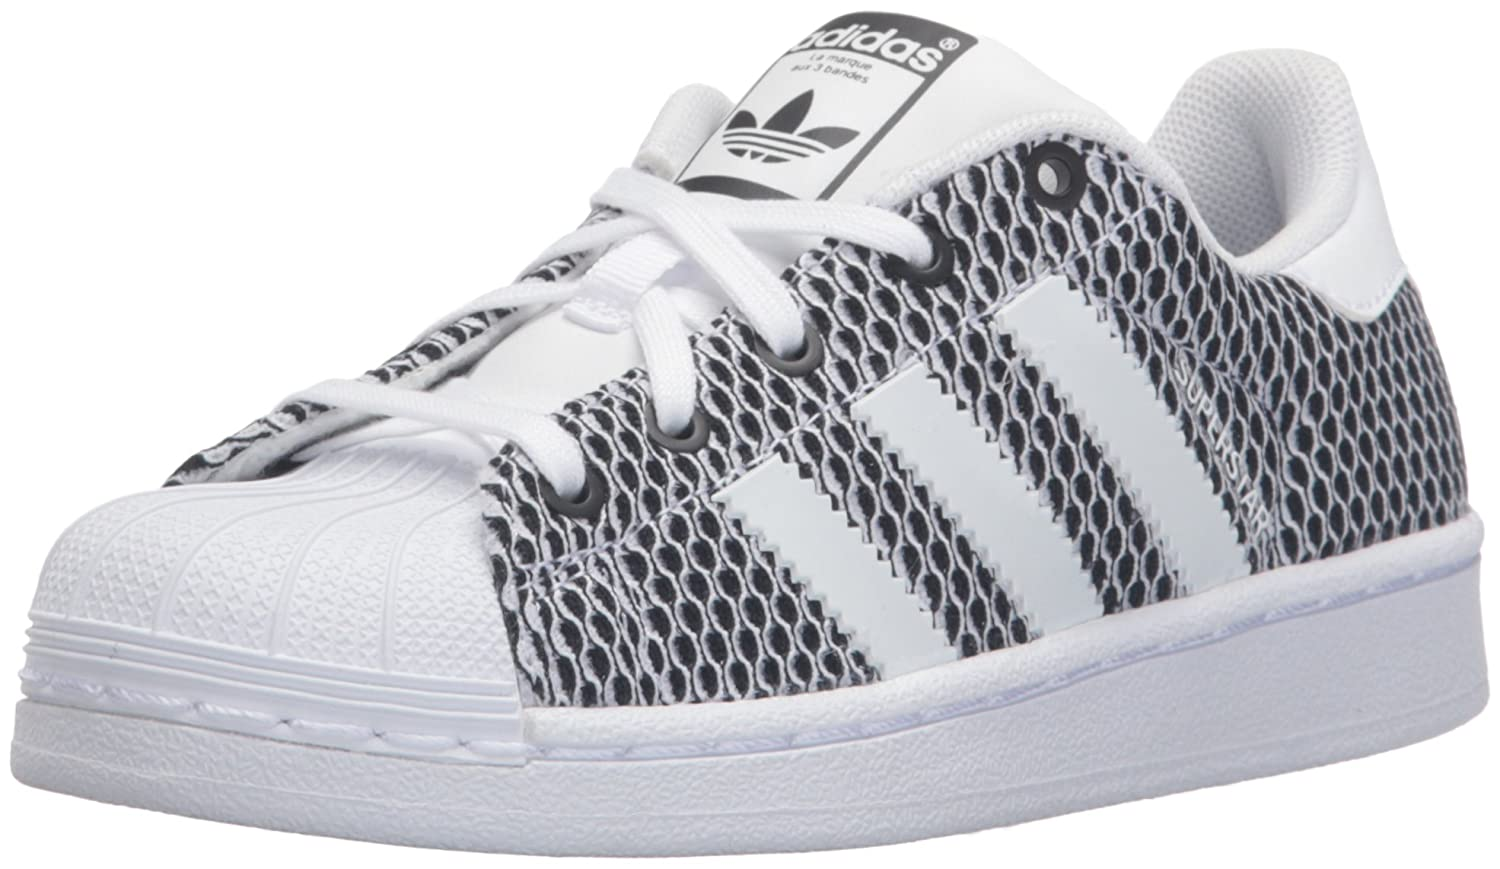 Avoid Major FOMO With These 4 Essential adidas Shoes